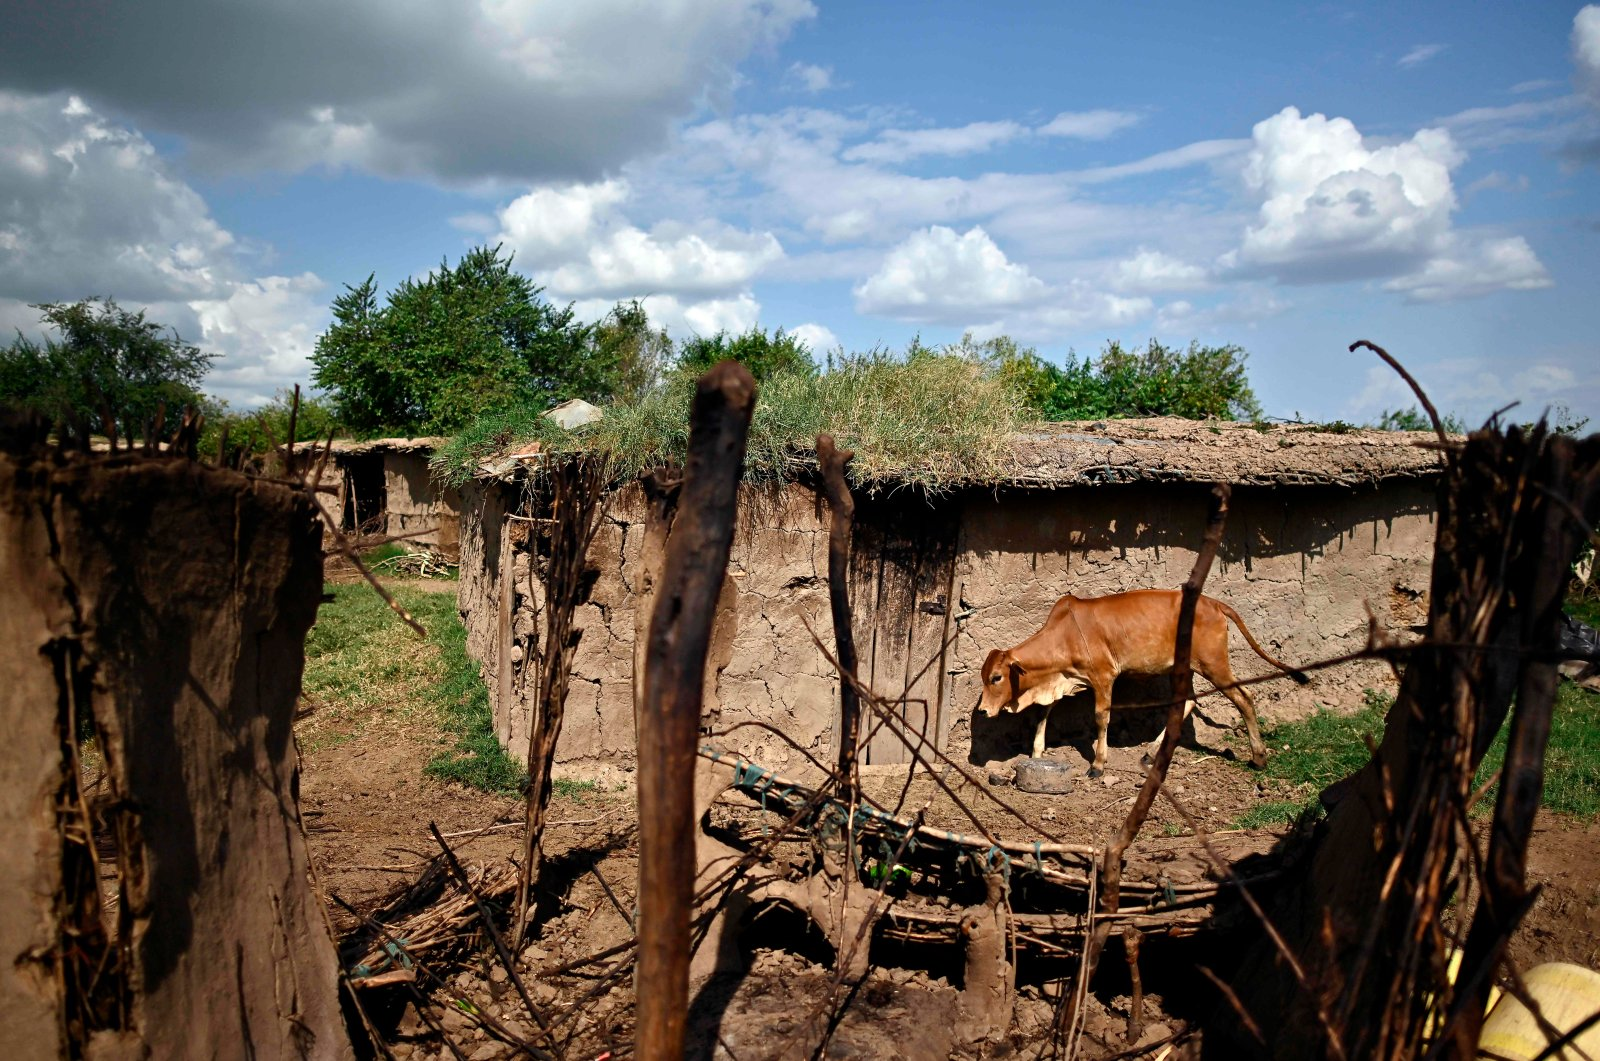 A cow comes to the door of its owner's home, a traditional shelter walled with cow-dung, at their village at Talek in the Maasai Mara National Reserve, Kenya, June 24, 2020. (AFP Photo)